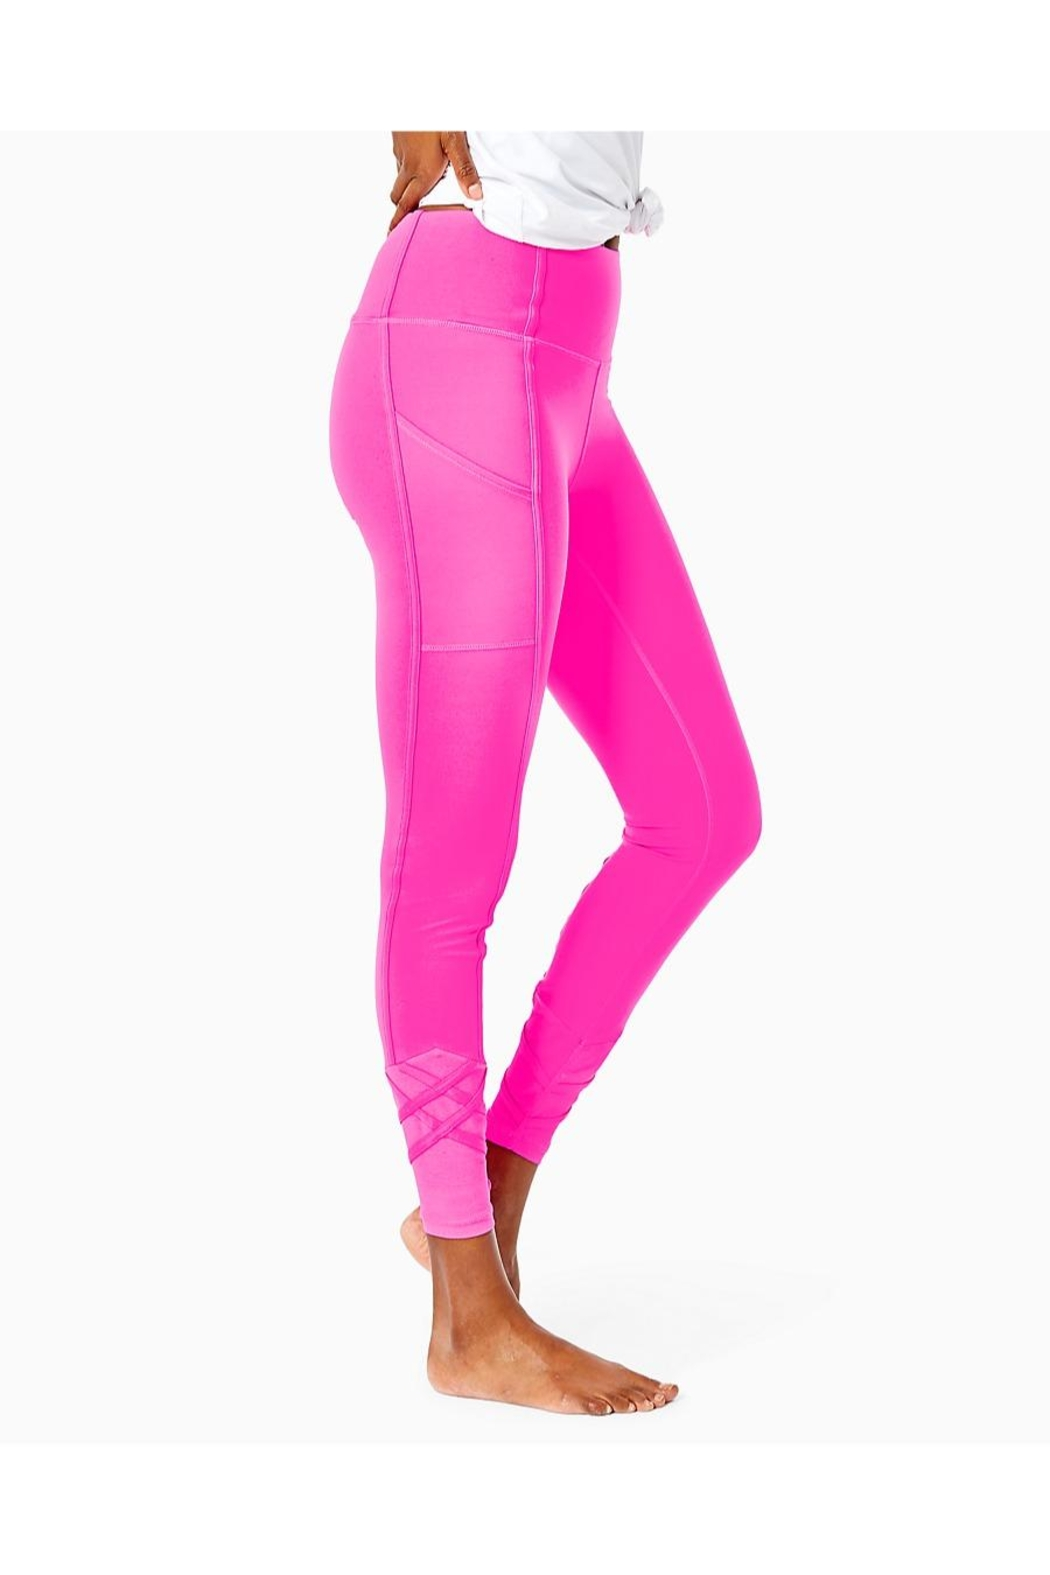 Lilly Pulitzer Weekender High-Rise Legging - Side Cropped Image